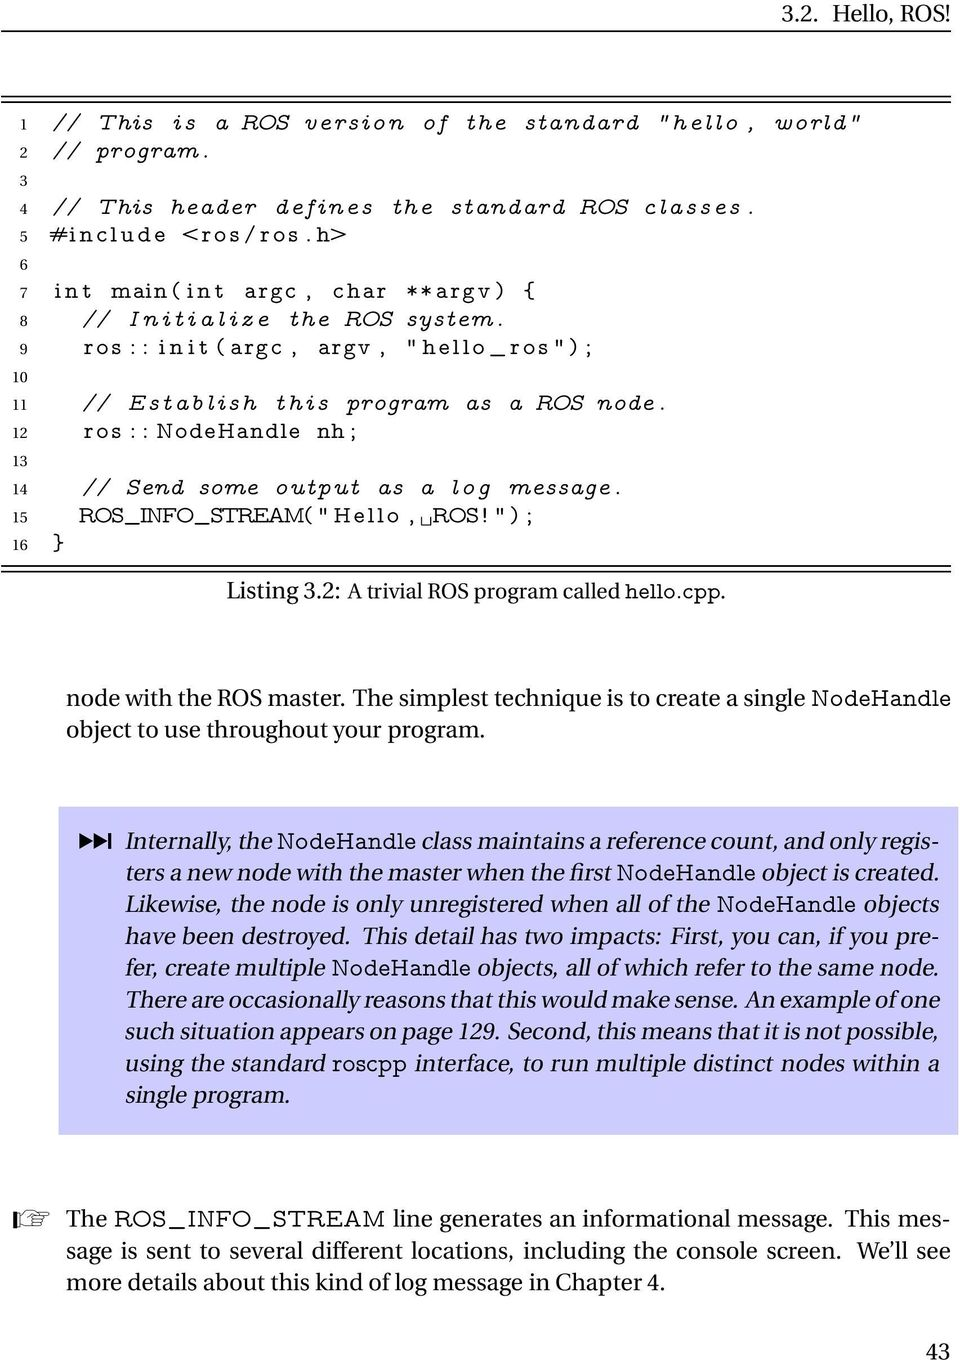 A Gentle Introduction to ROS - PDF